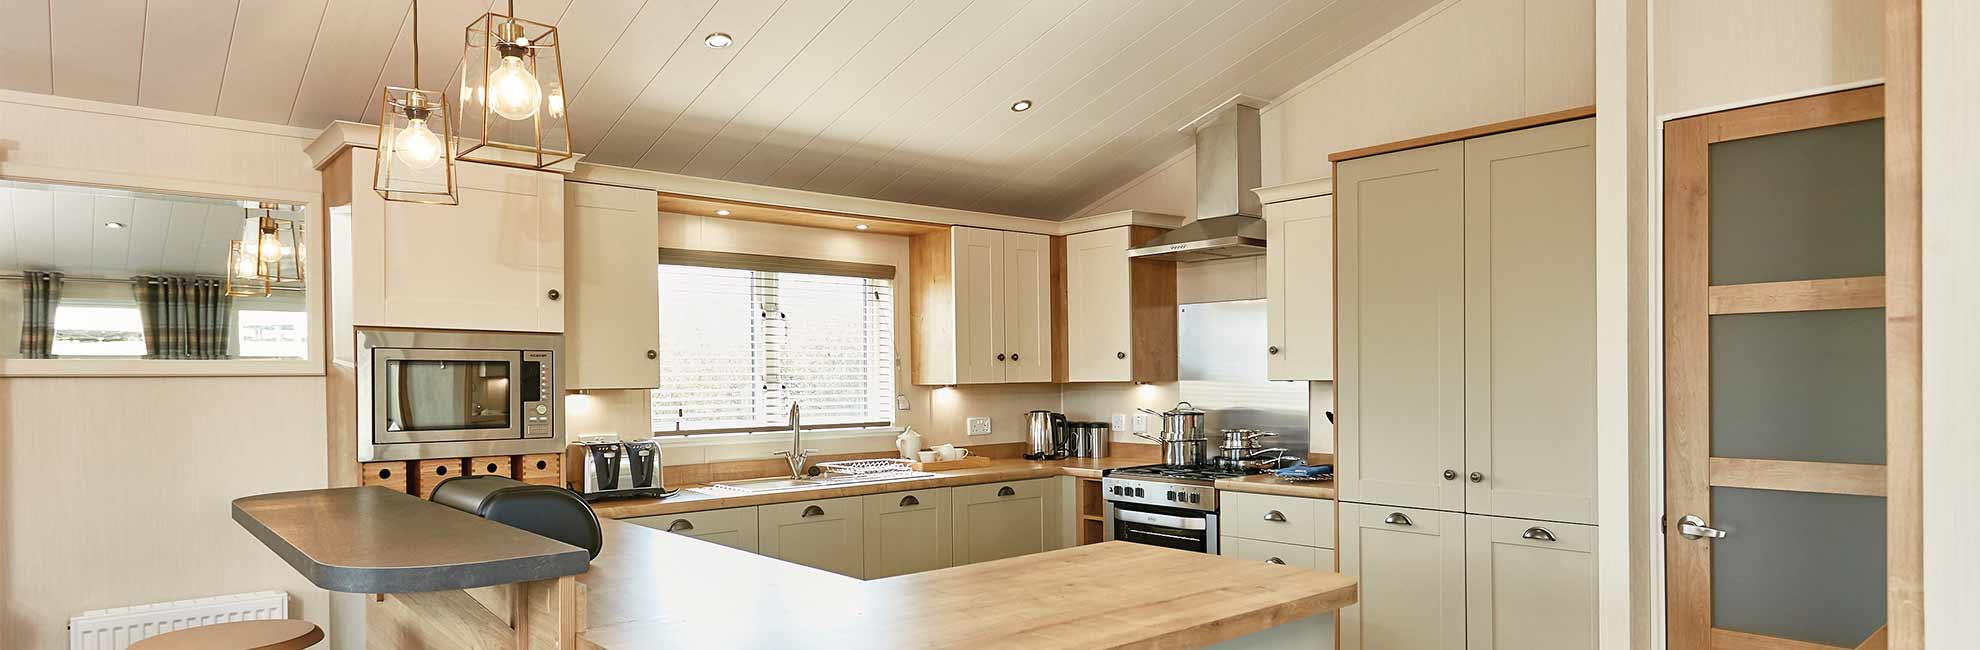 A bright lodge kitchen interior